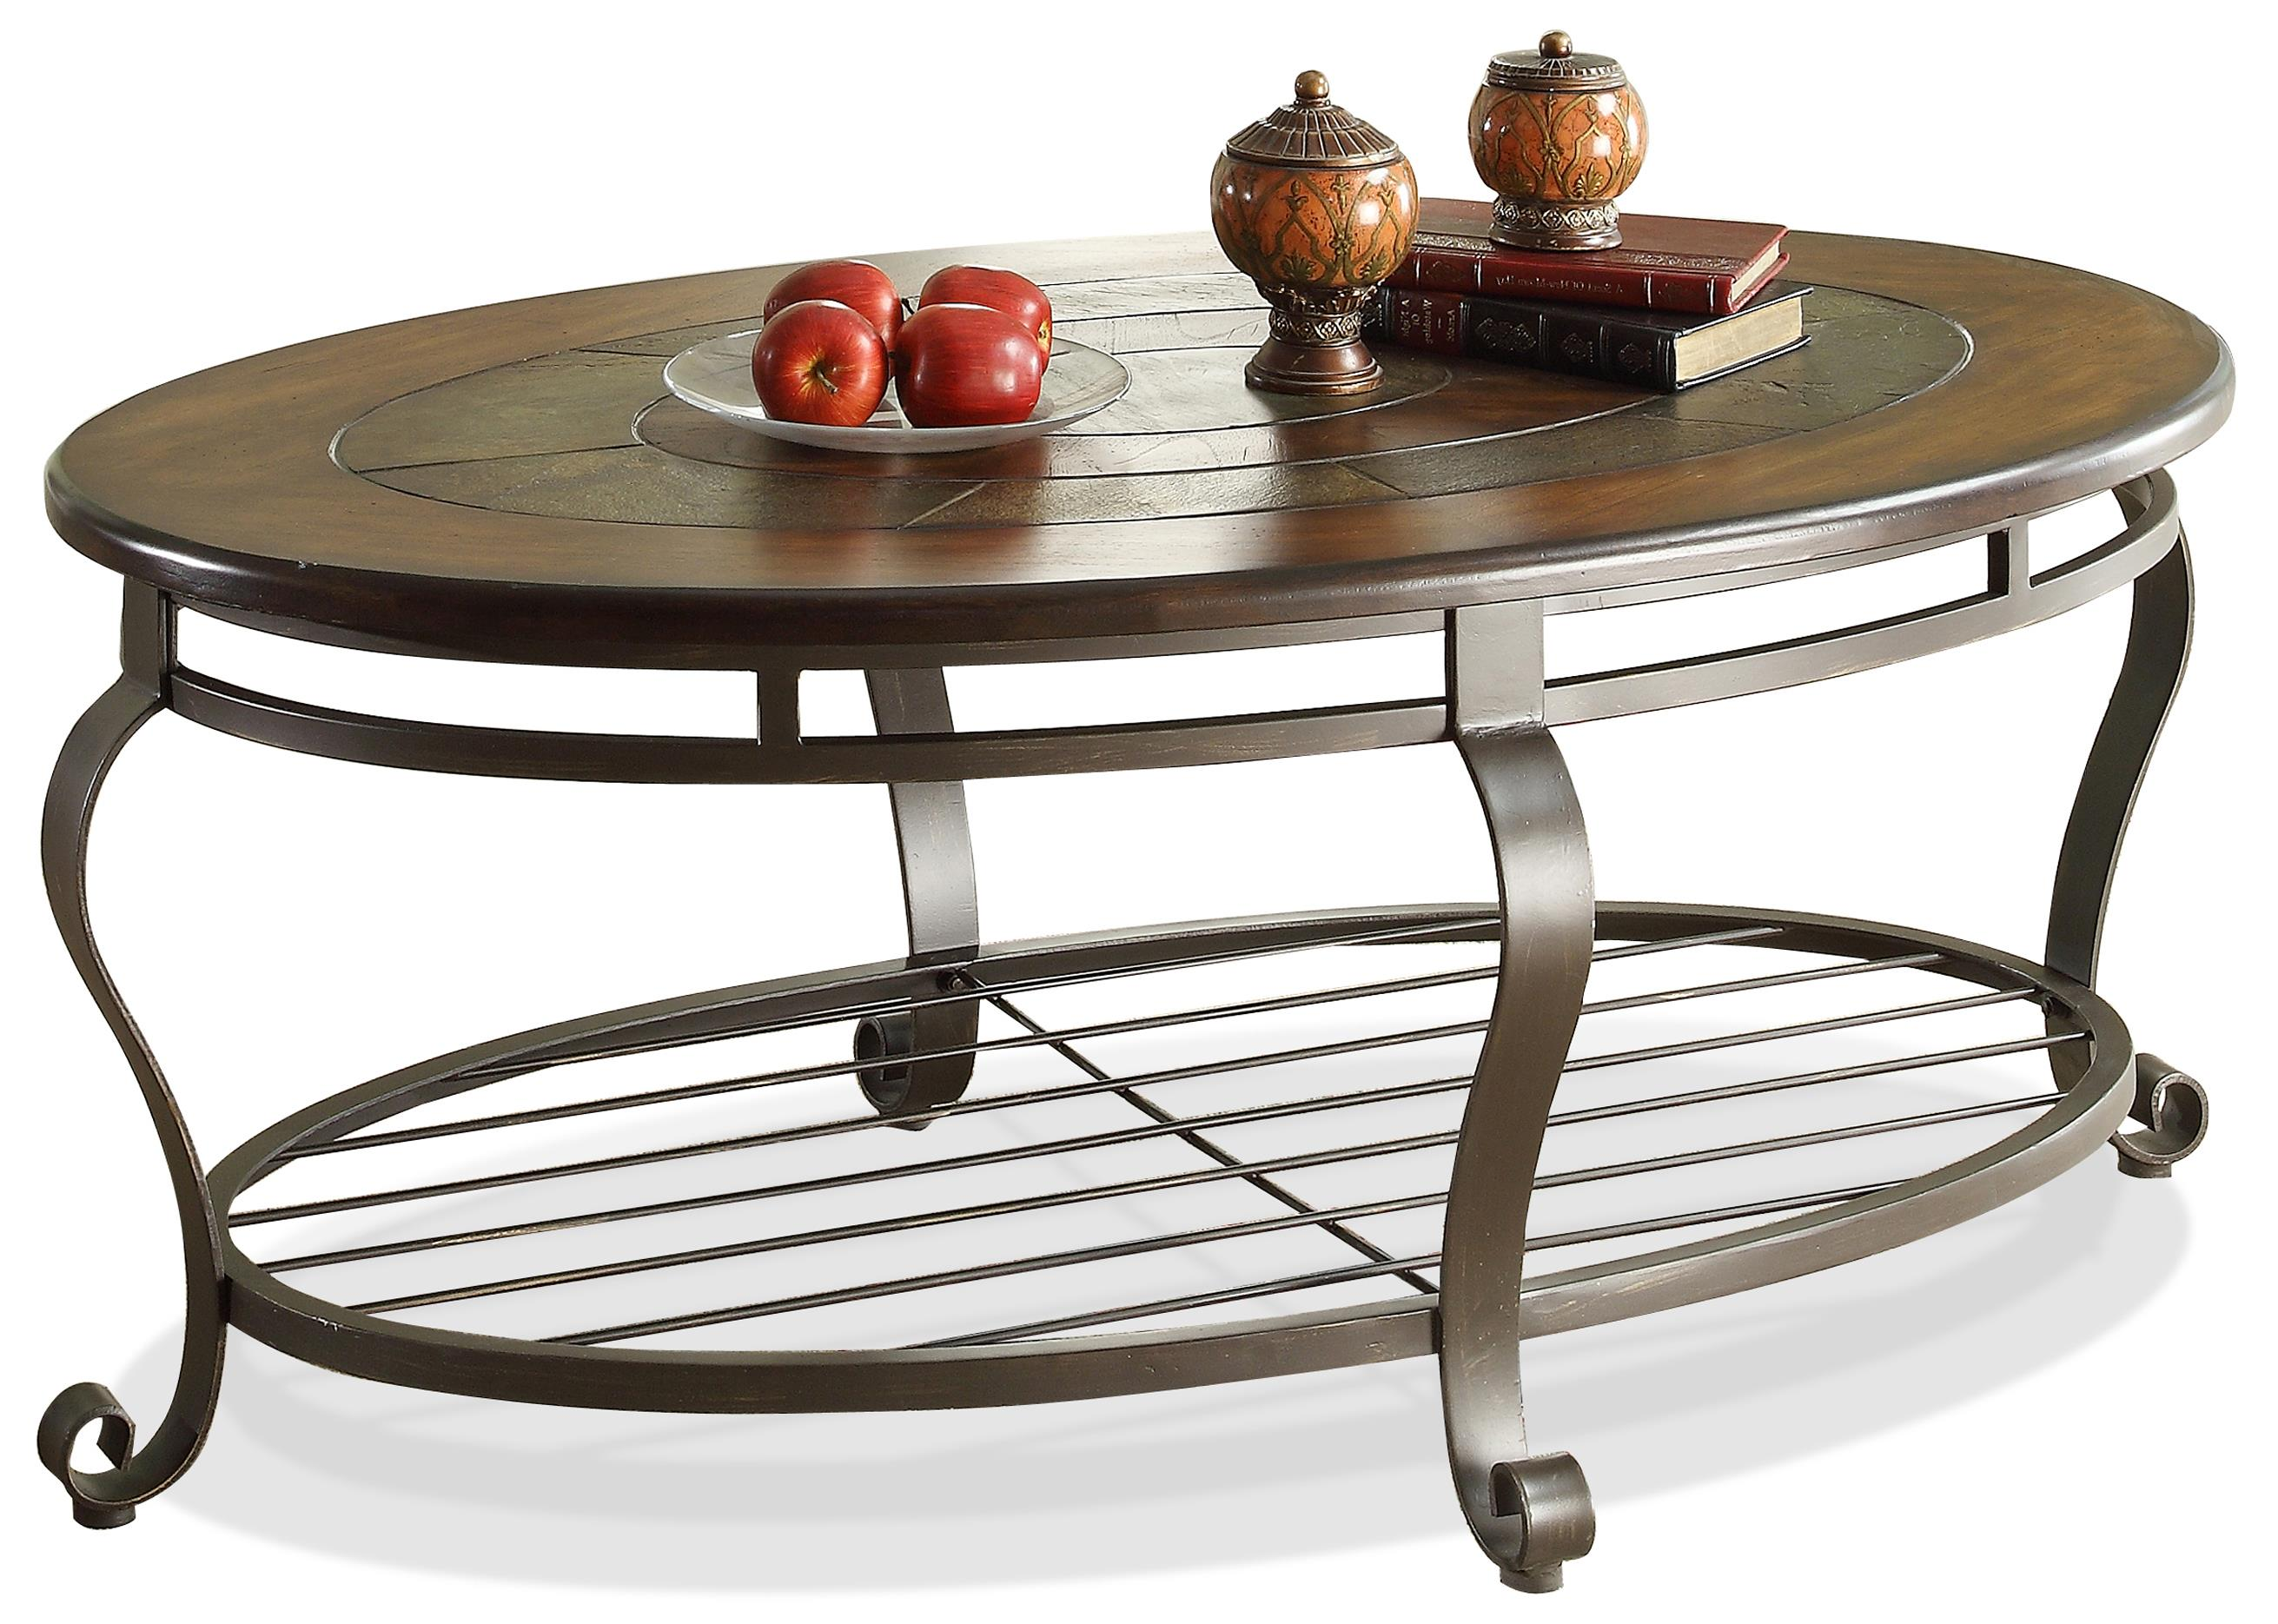 Riverside furniture eastview slate top oval coffeetable for Coffee tables value city furniture